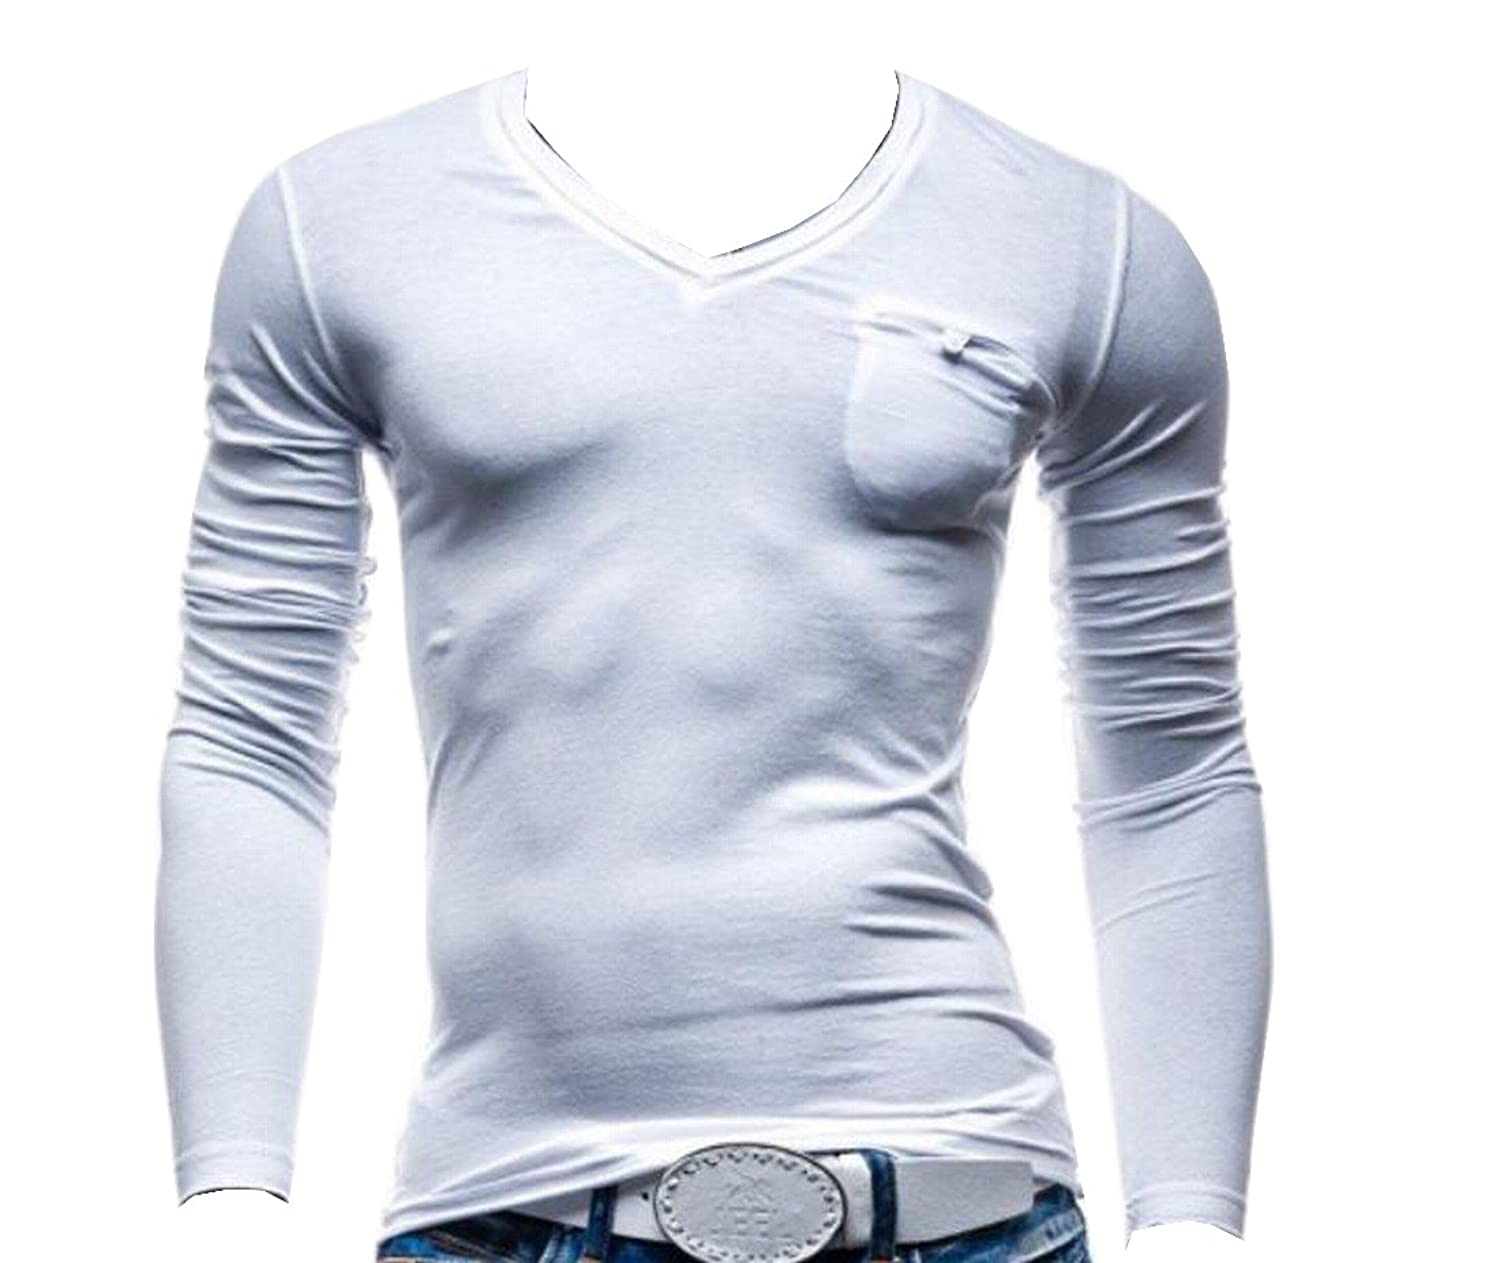 Sheng Xi Men's Casual Solid Slim Fit With Pocket FashionT-Shirt Tops